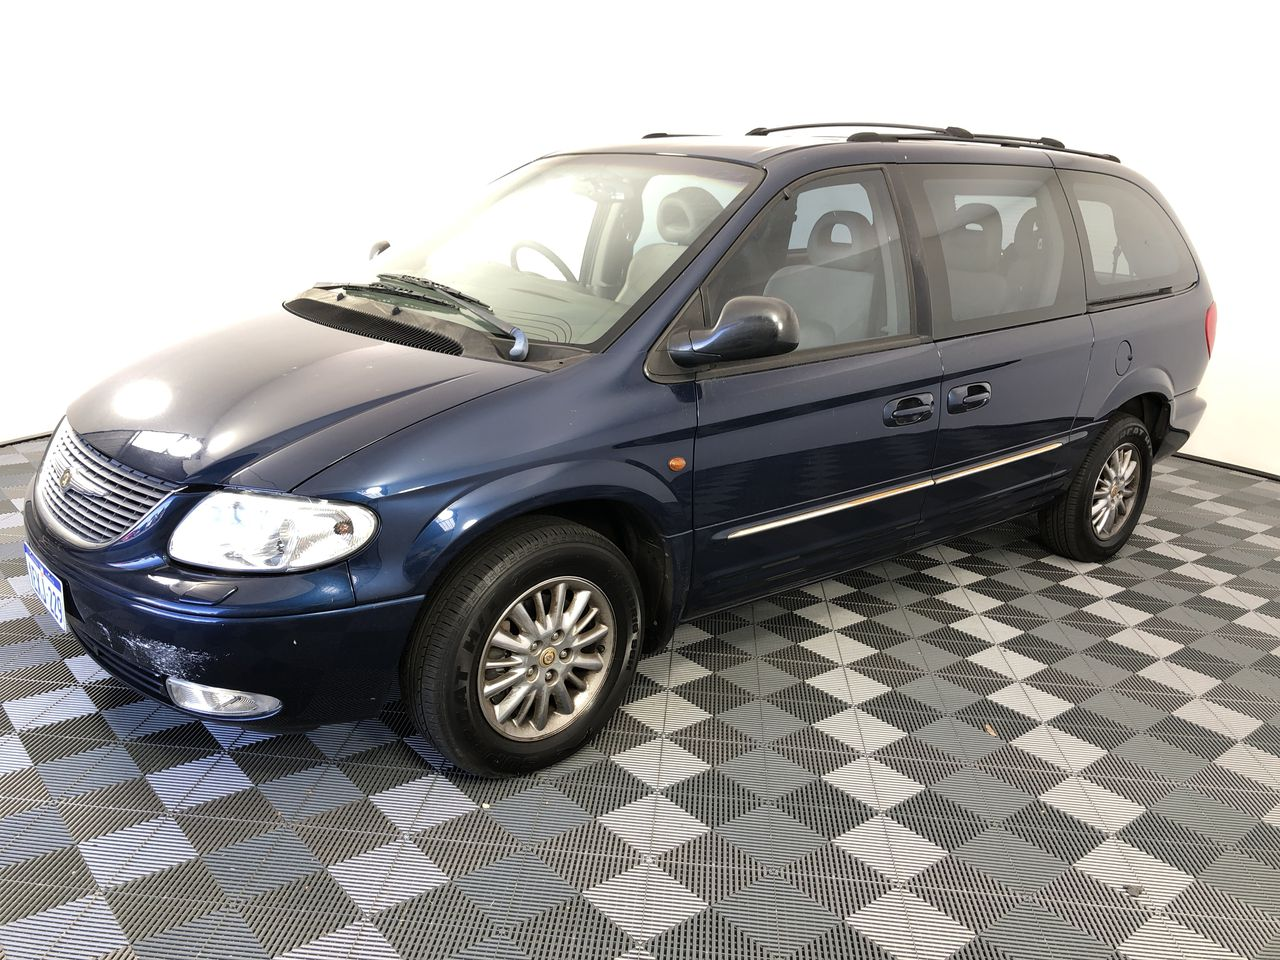 2002 Chrysler Grand Voyager Limited RG Automatic 7 Seats People Mover